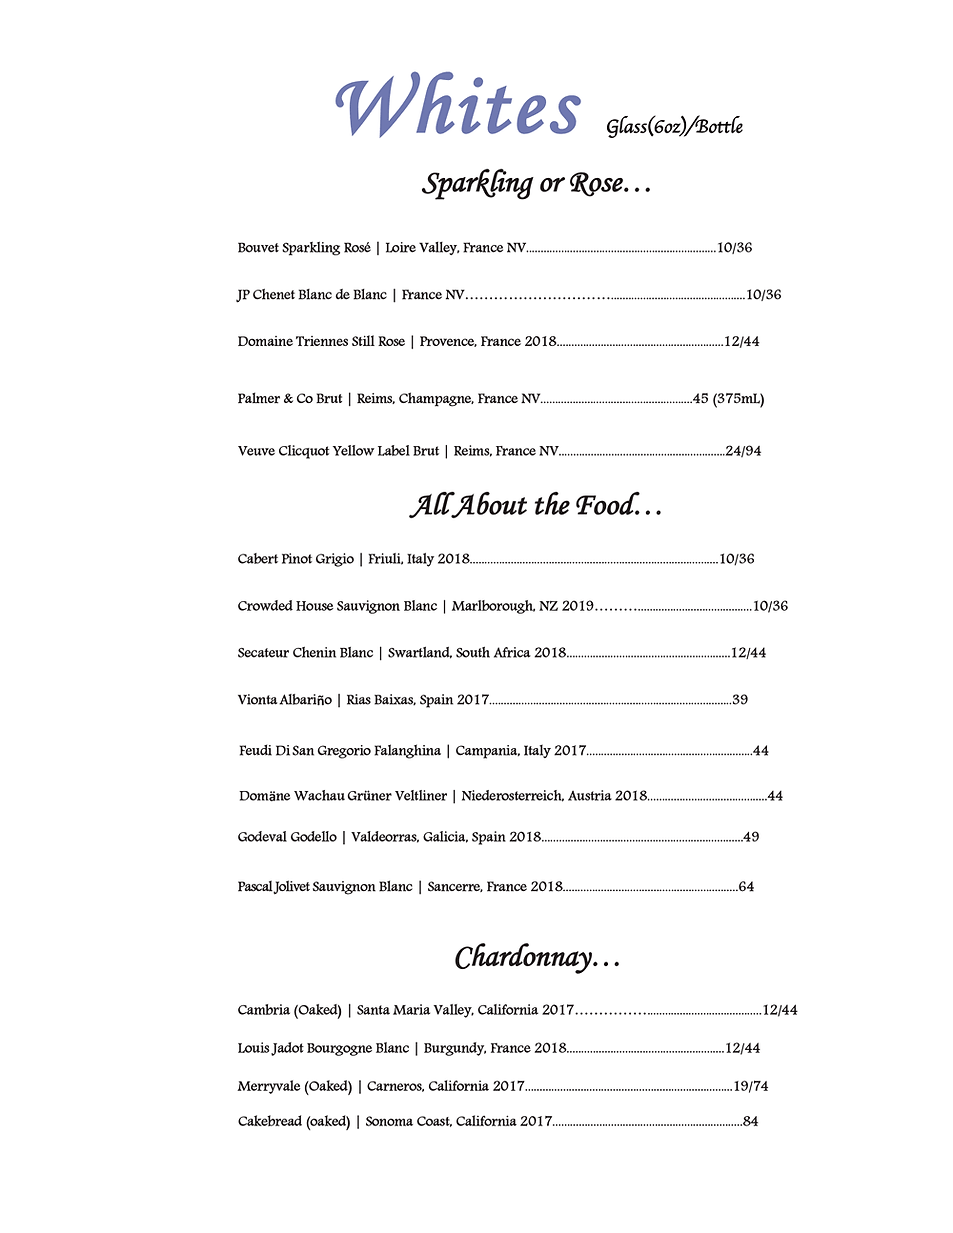 DTC-Wine-List_2020_white.png